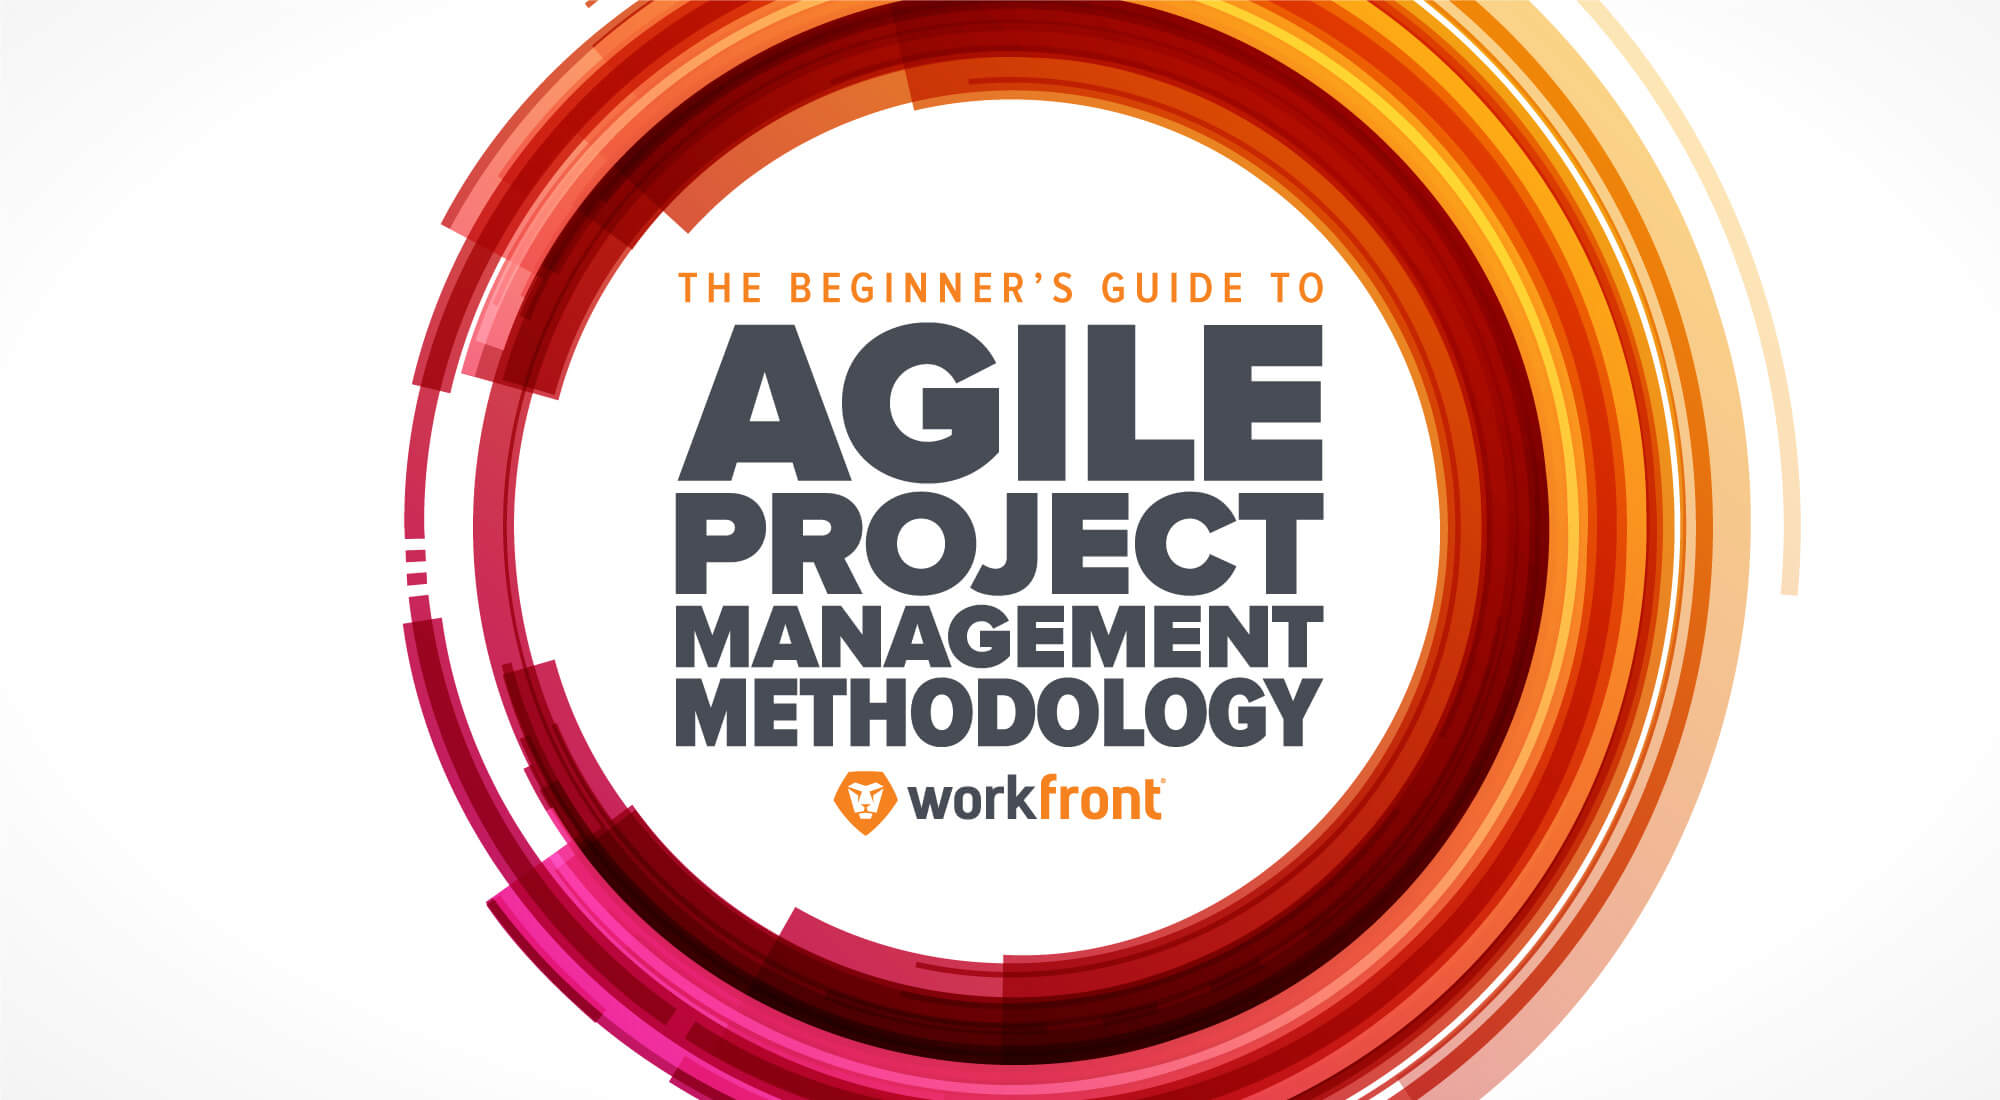 Agile Project Planning Steps the beginners' guide to agile project management methodology